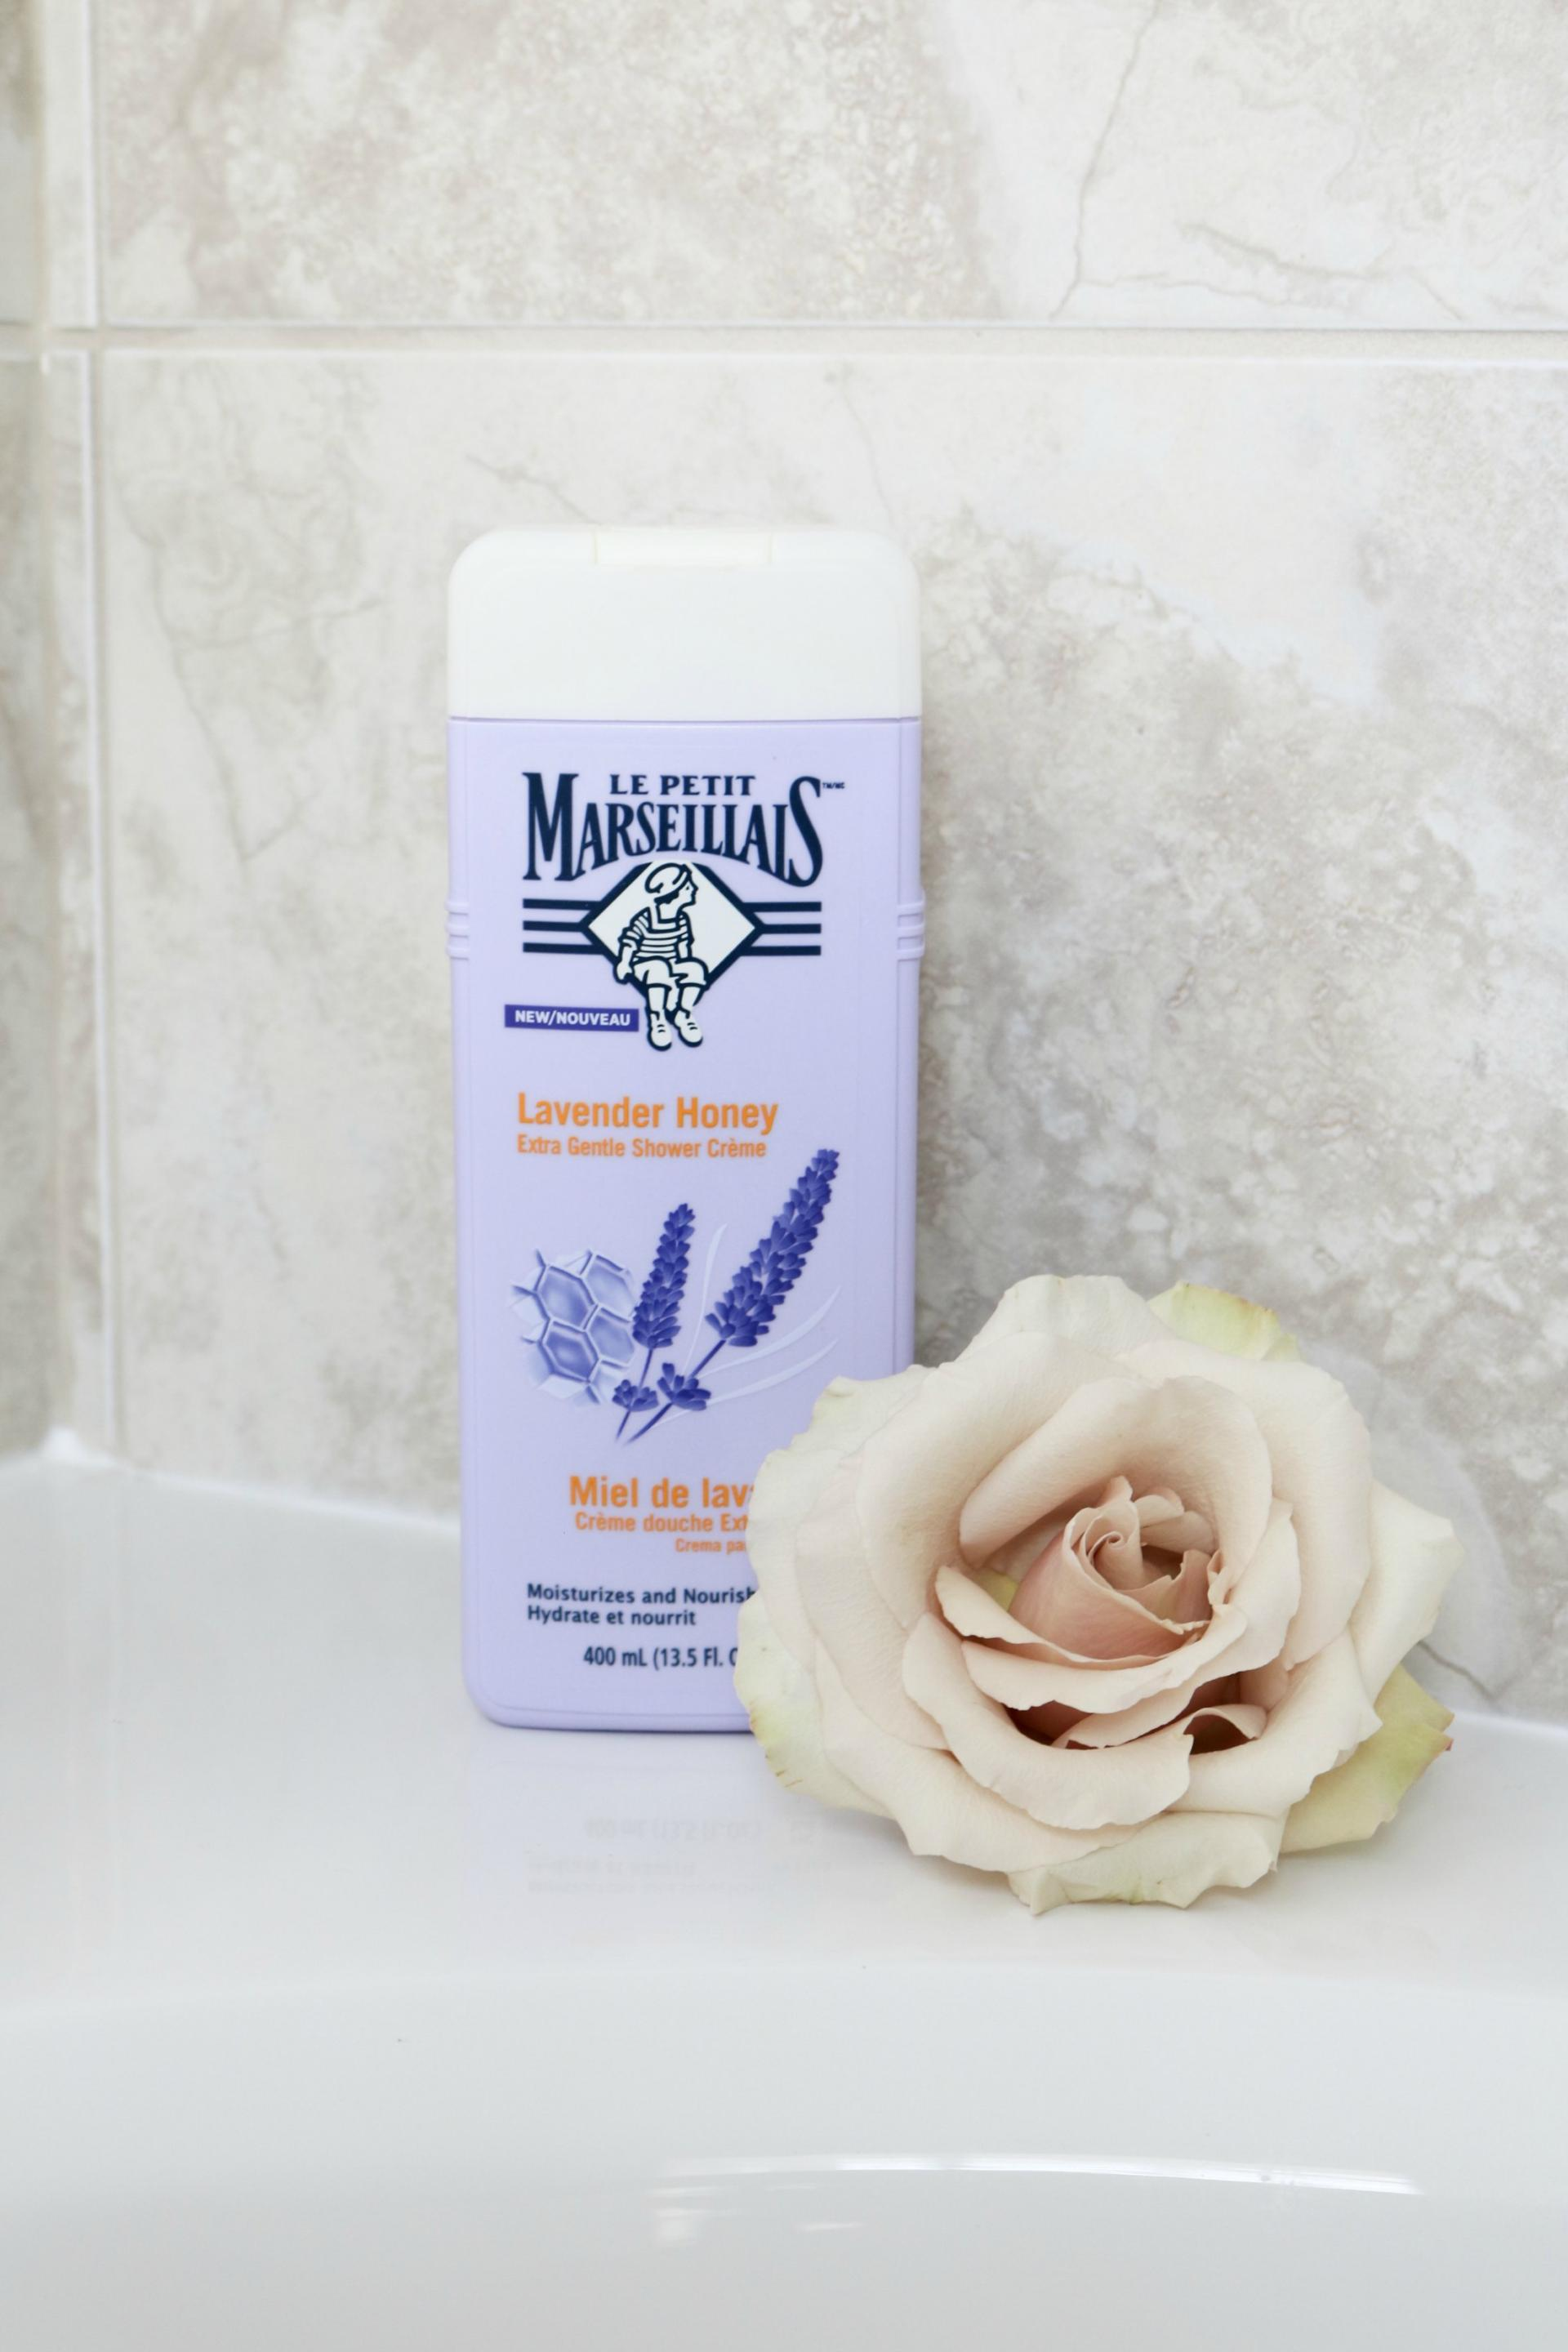 This $7 French Body Wash will seriously up your bath game!